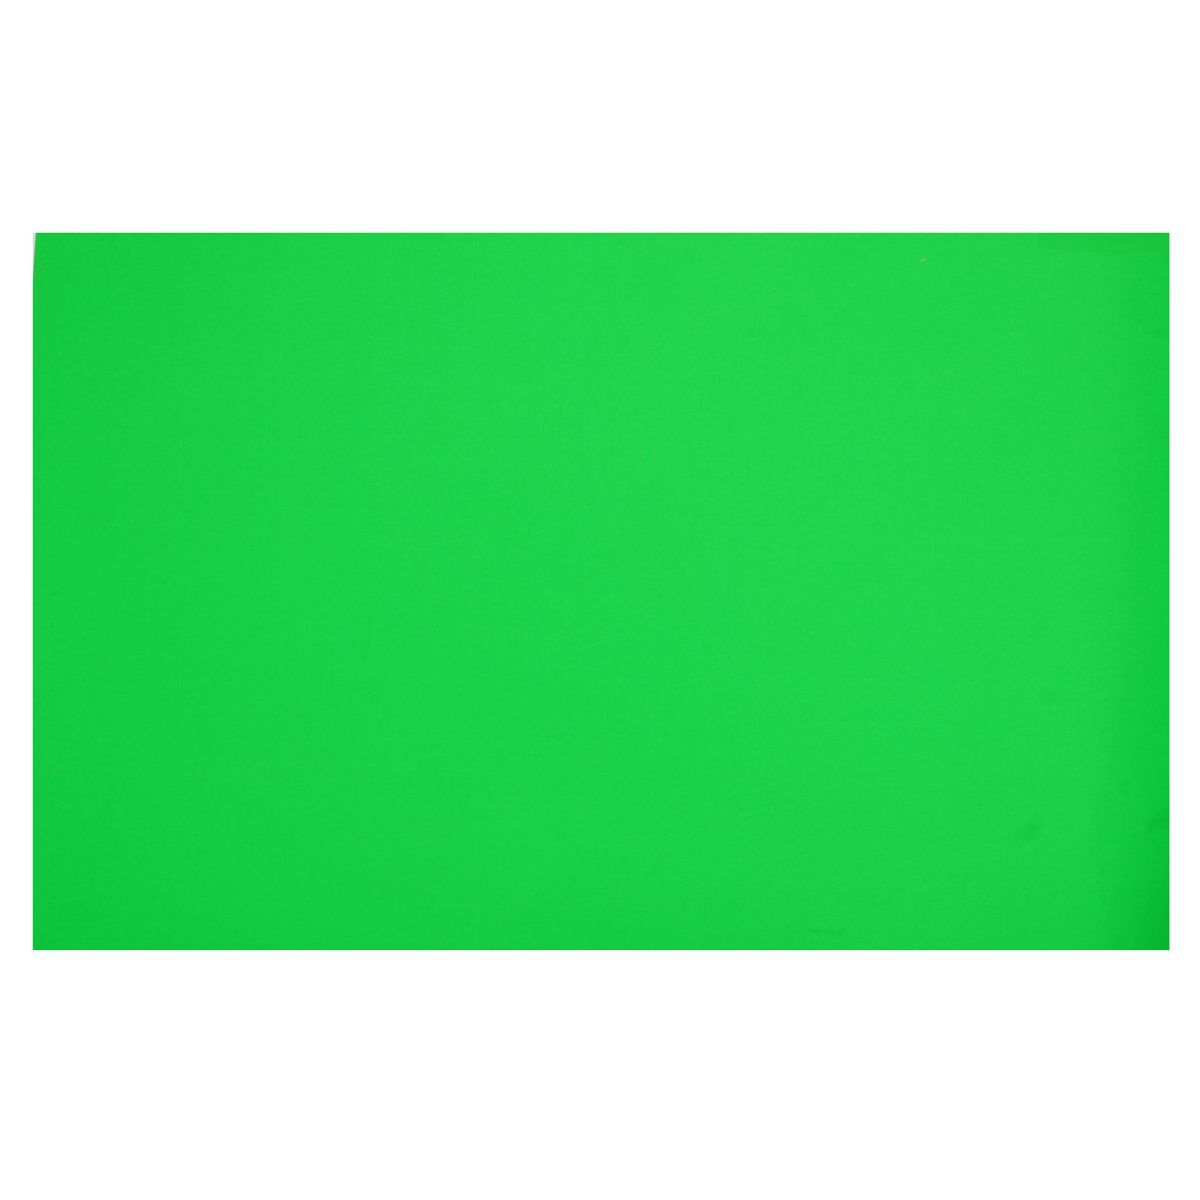 Image of 380mic Fluorescent Card 450x640mm, Green